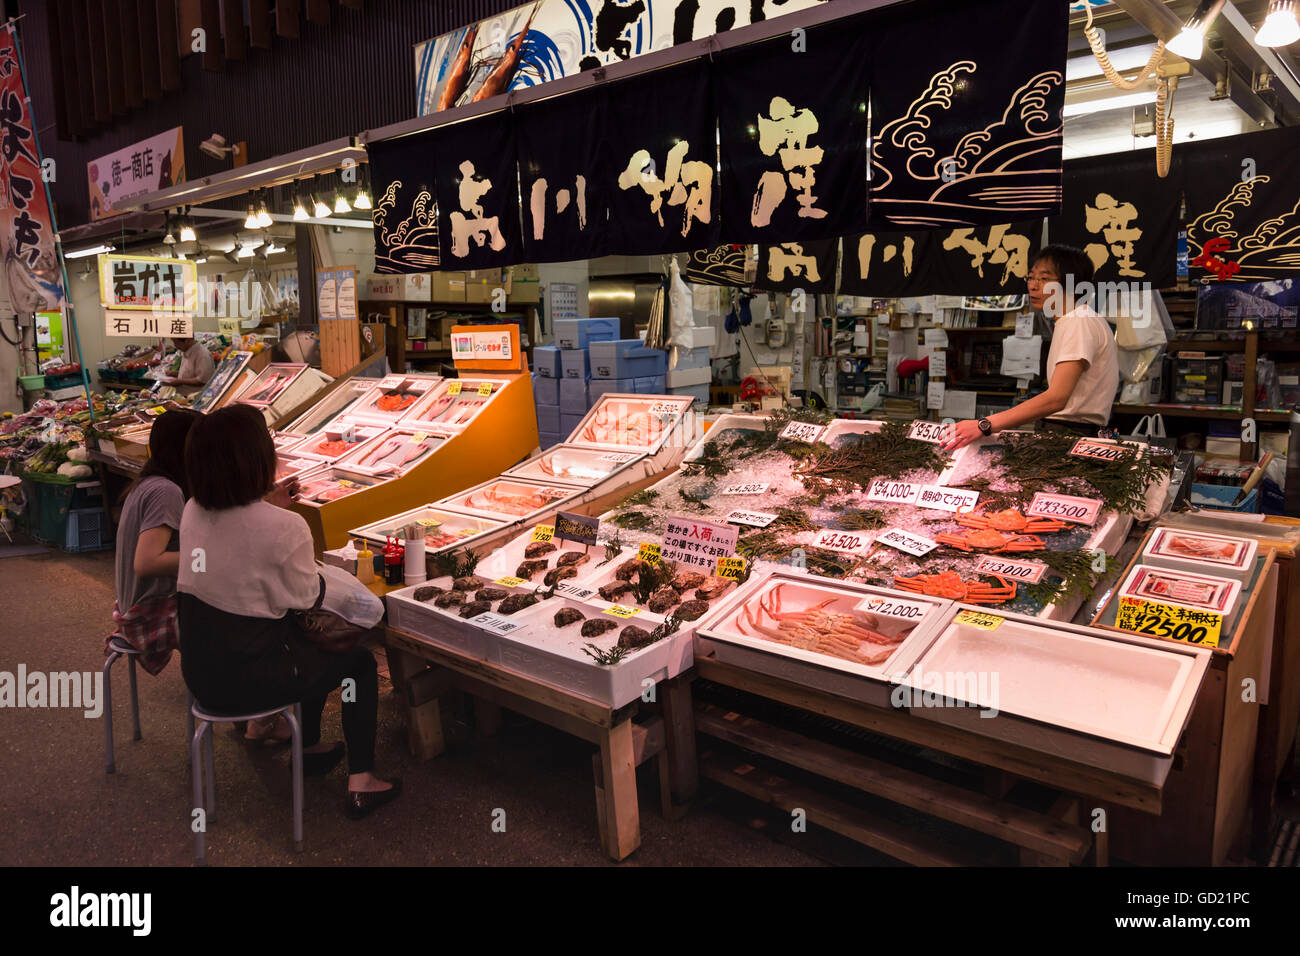 Diners sit and talk to seafood stall owner, Omicho fresh food market, network of covered stall lined streets, Kanazawa, - Stock Image